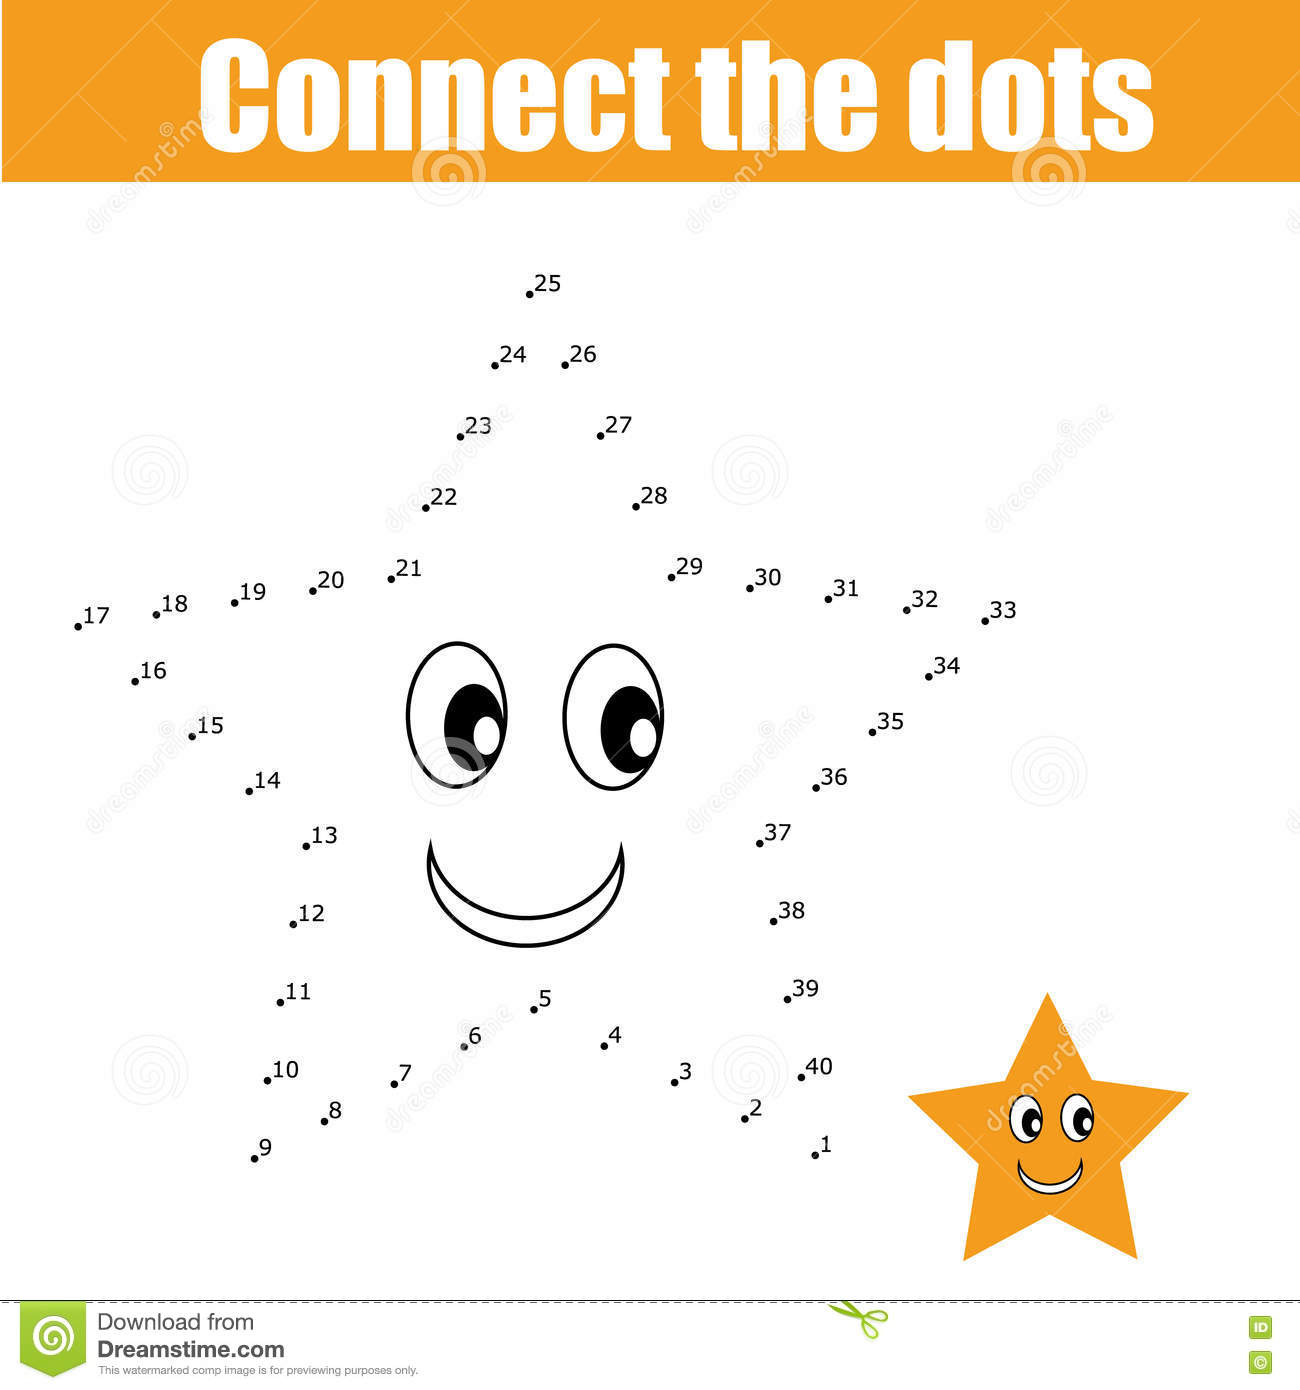 children connect dots